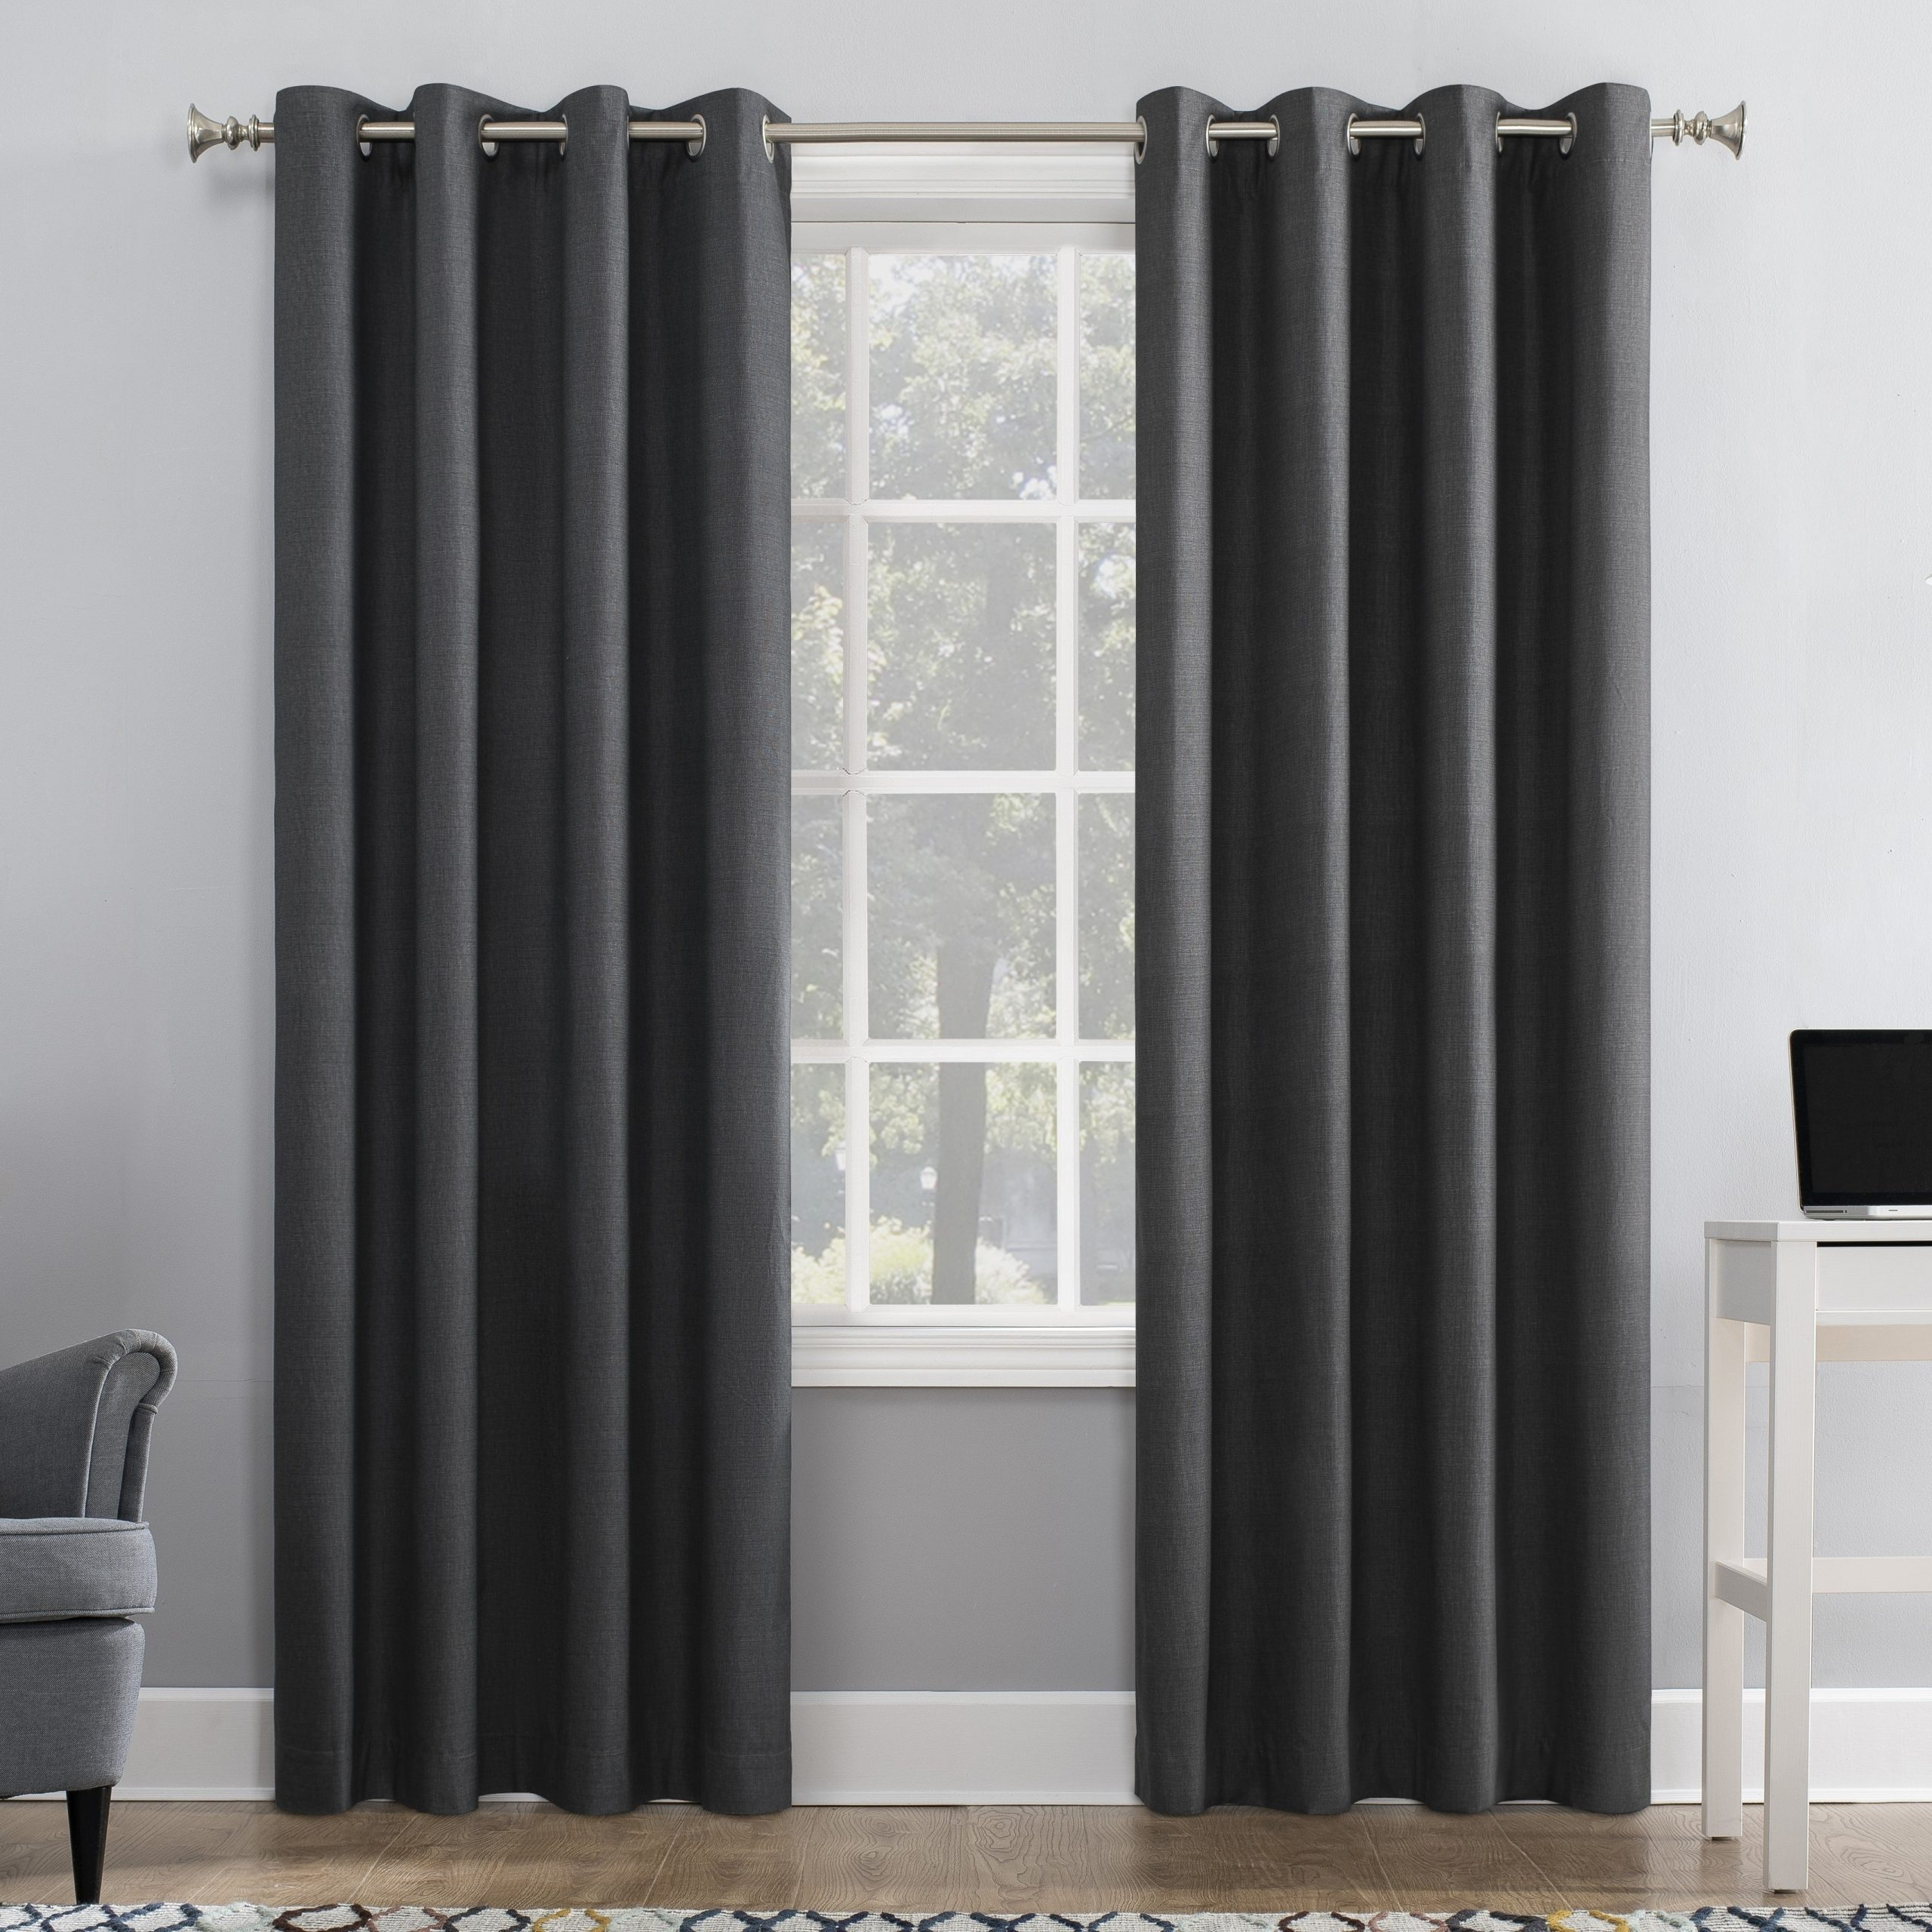 [%Sun Zero Duran Thermal Insulated 100% Blackout Grommet Curtain Panel In Widely Used Duran Thermal Insulated Blackout Grommet Curtain Panels|Duran Thermal Insulated Blackout Grommet Curtain Panels With Regard To Favorite Sun Zero Duran Thermal Insulated 100% Blackout Grommet Curtain Panel|Current Duran Thermal Insulated Blackout Grommet Curtain Panels For Sun Zero Duran Thermal Insulated 100% Blackout Grommet Curtain Panel|Most Recent Sun Zero Duran Thermal Insulated 100% Blackout Grommet Curtain Panel Pertaining To Duran Thermal Insulated Blackout Grommet Curtain Panels%] (View 6 of 21)